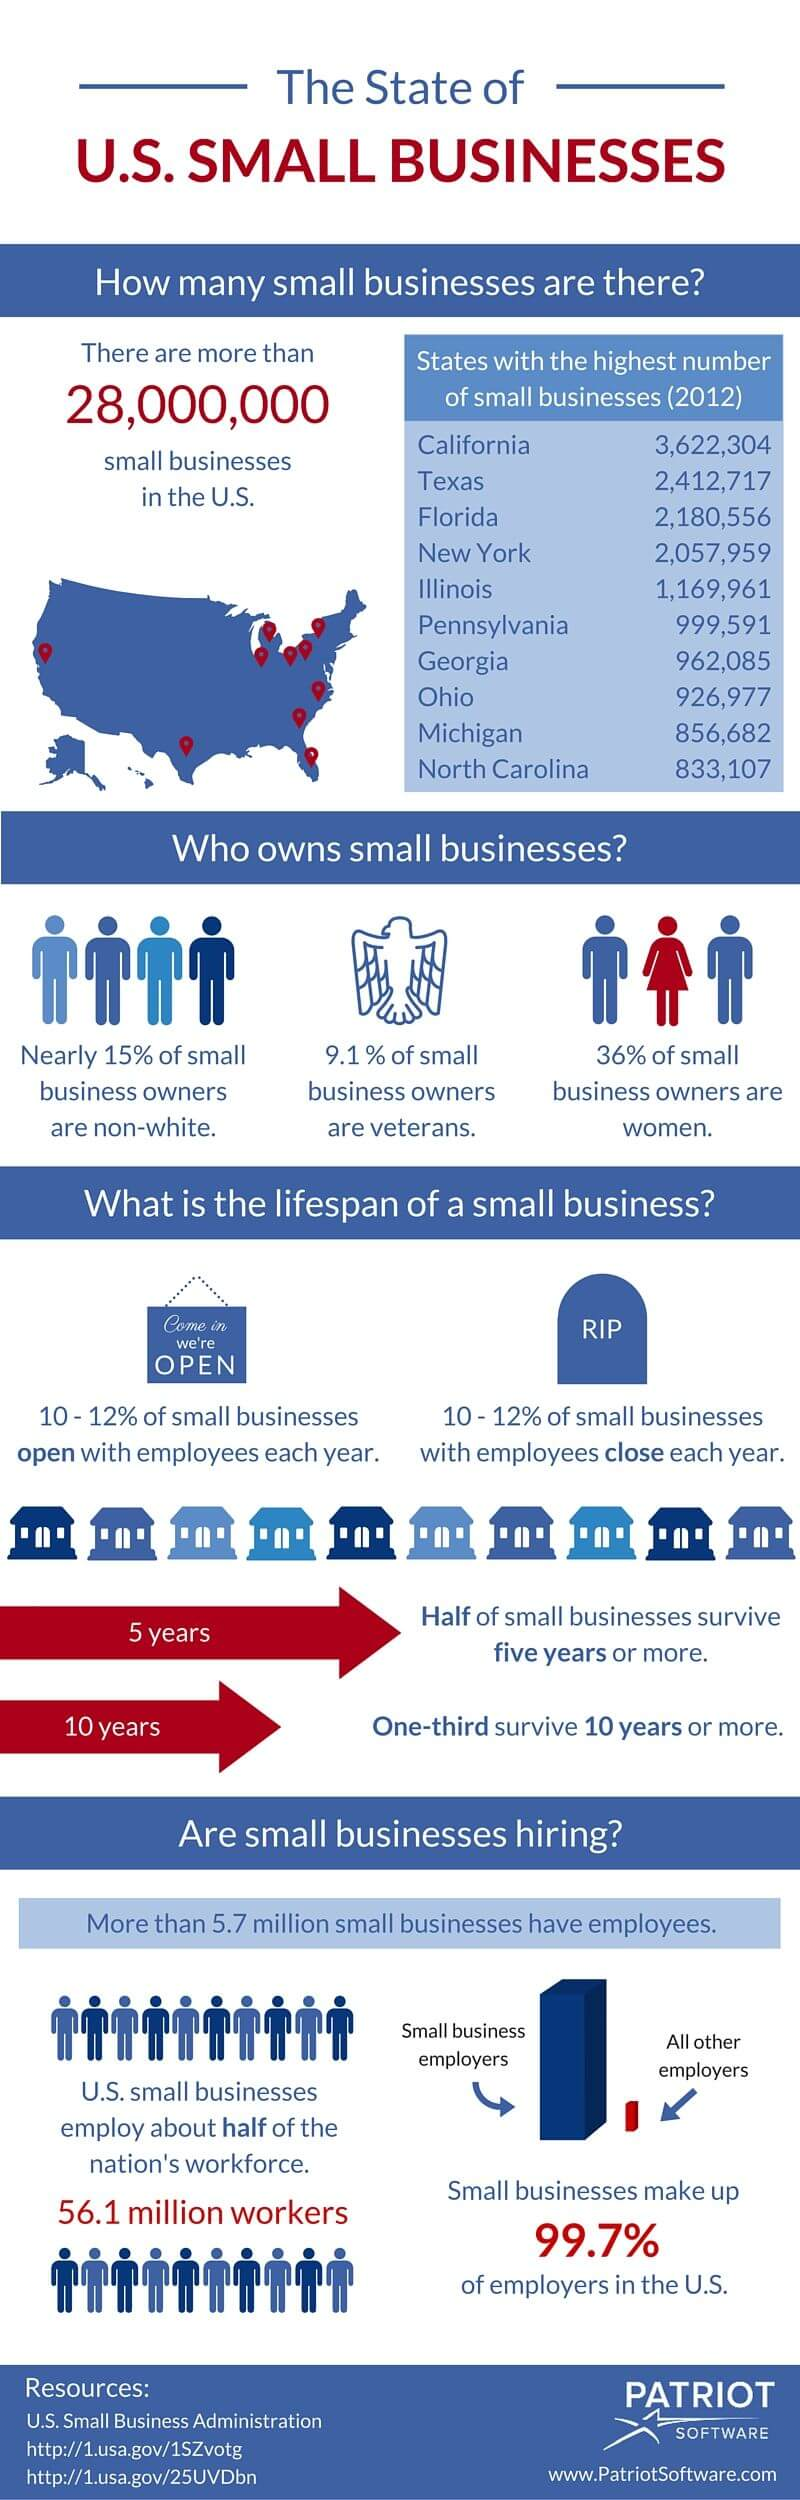 The State of Small Businesses in the U.S. Infographic